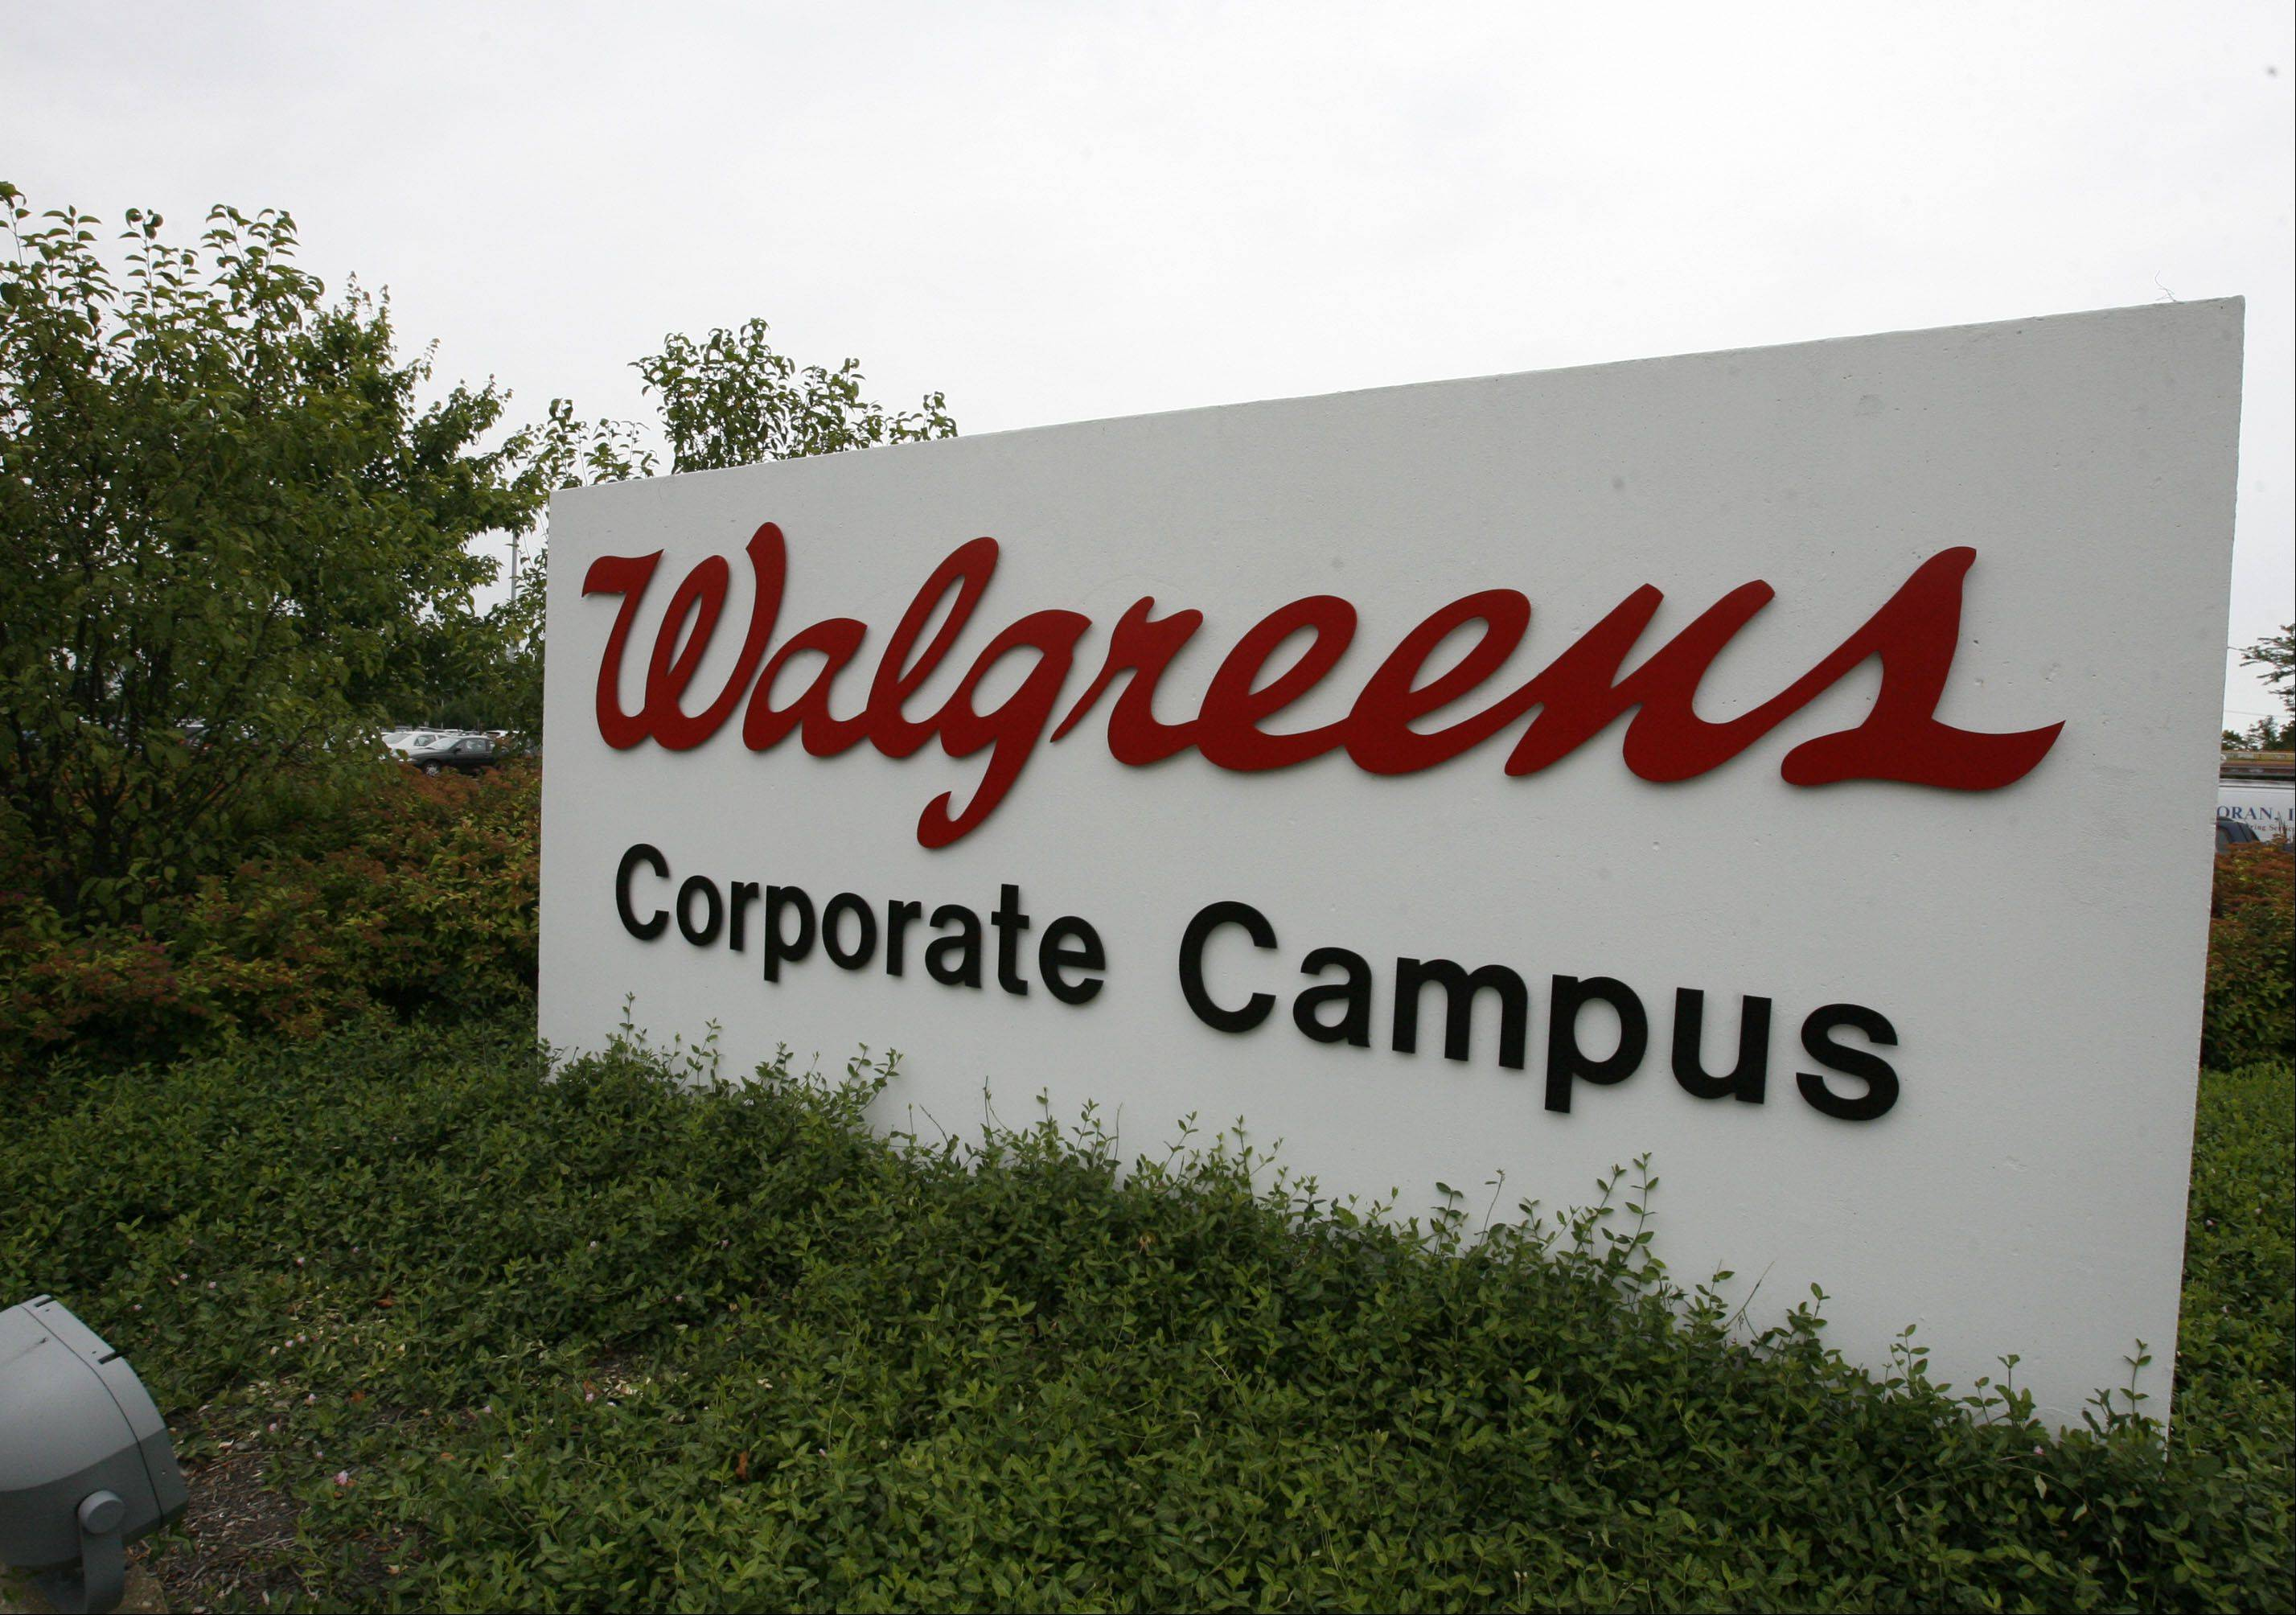 Deerfield-based Walgreen Co. said Wednesday it will raise its quarterly dividend to 31.5 cents from 27.5 cents.